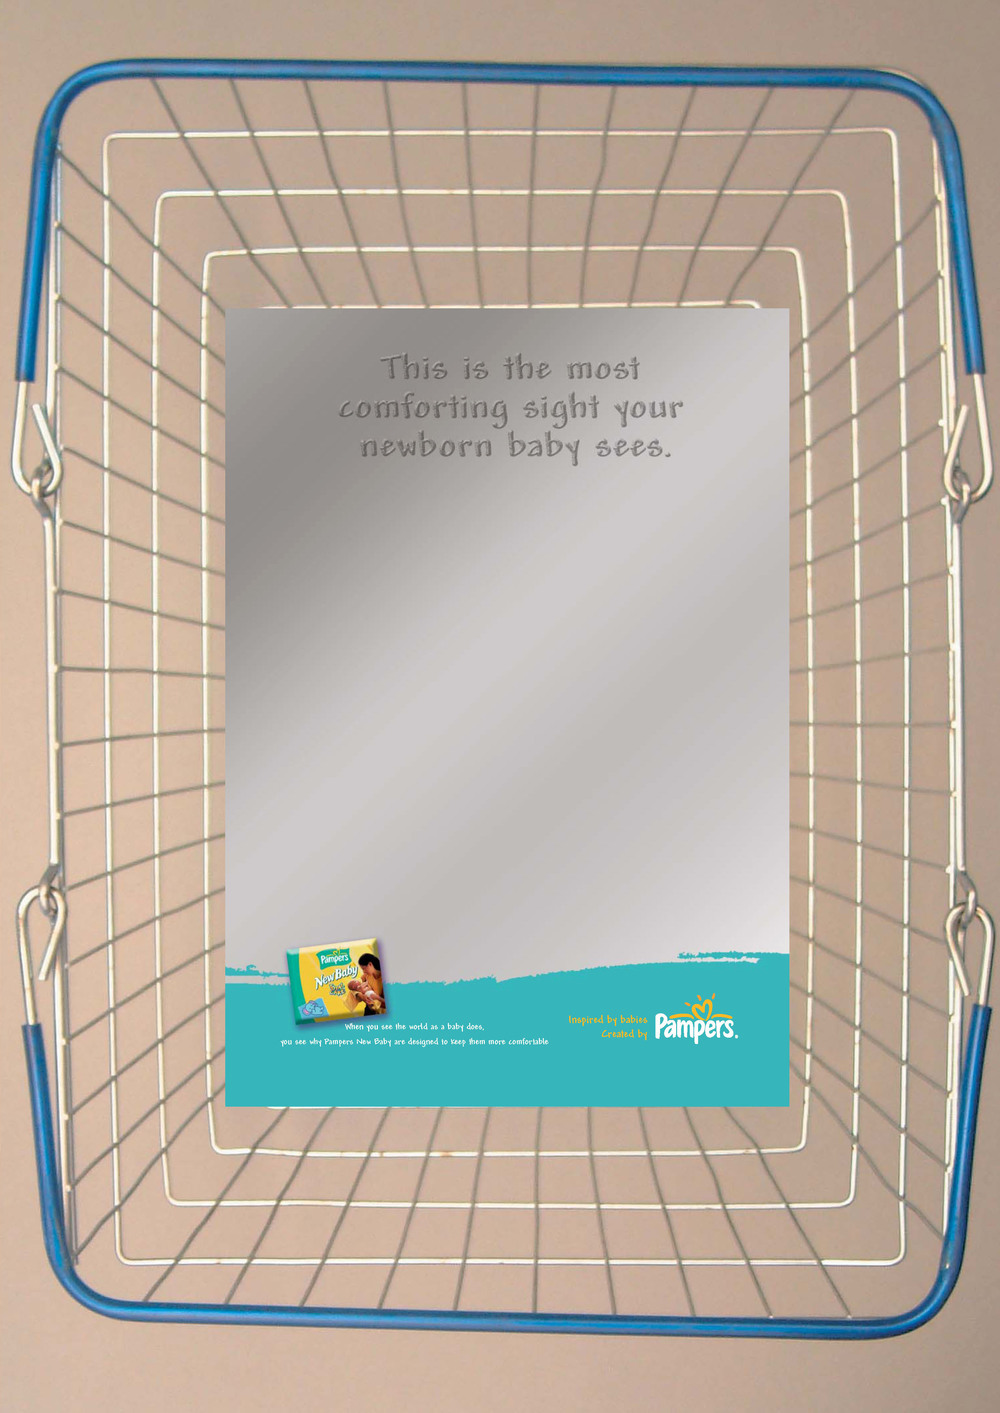 toybox_creative_pampers_experiential_Page_10.jpg